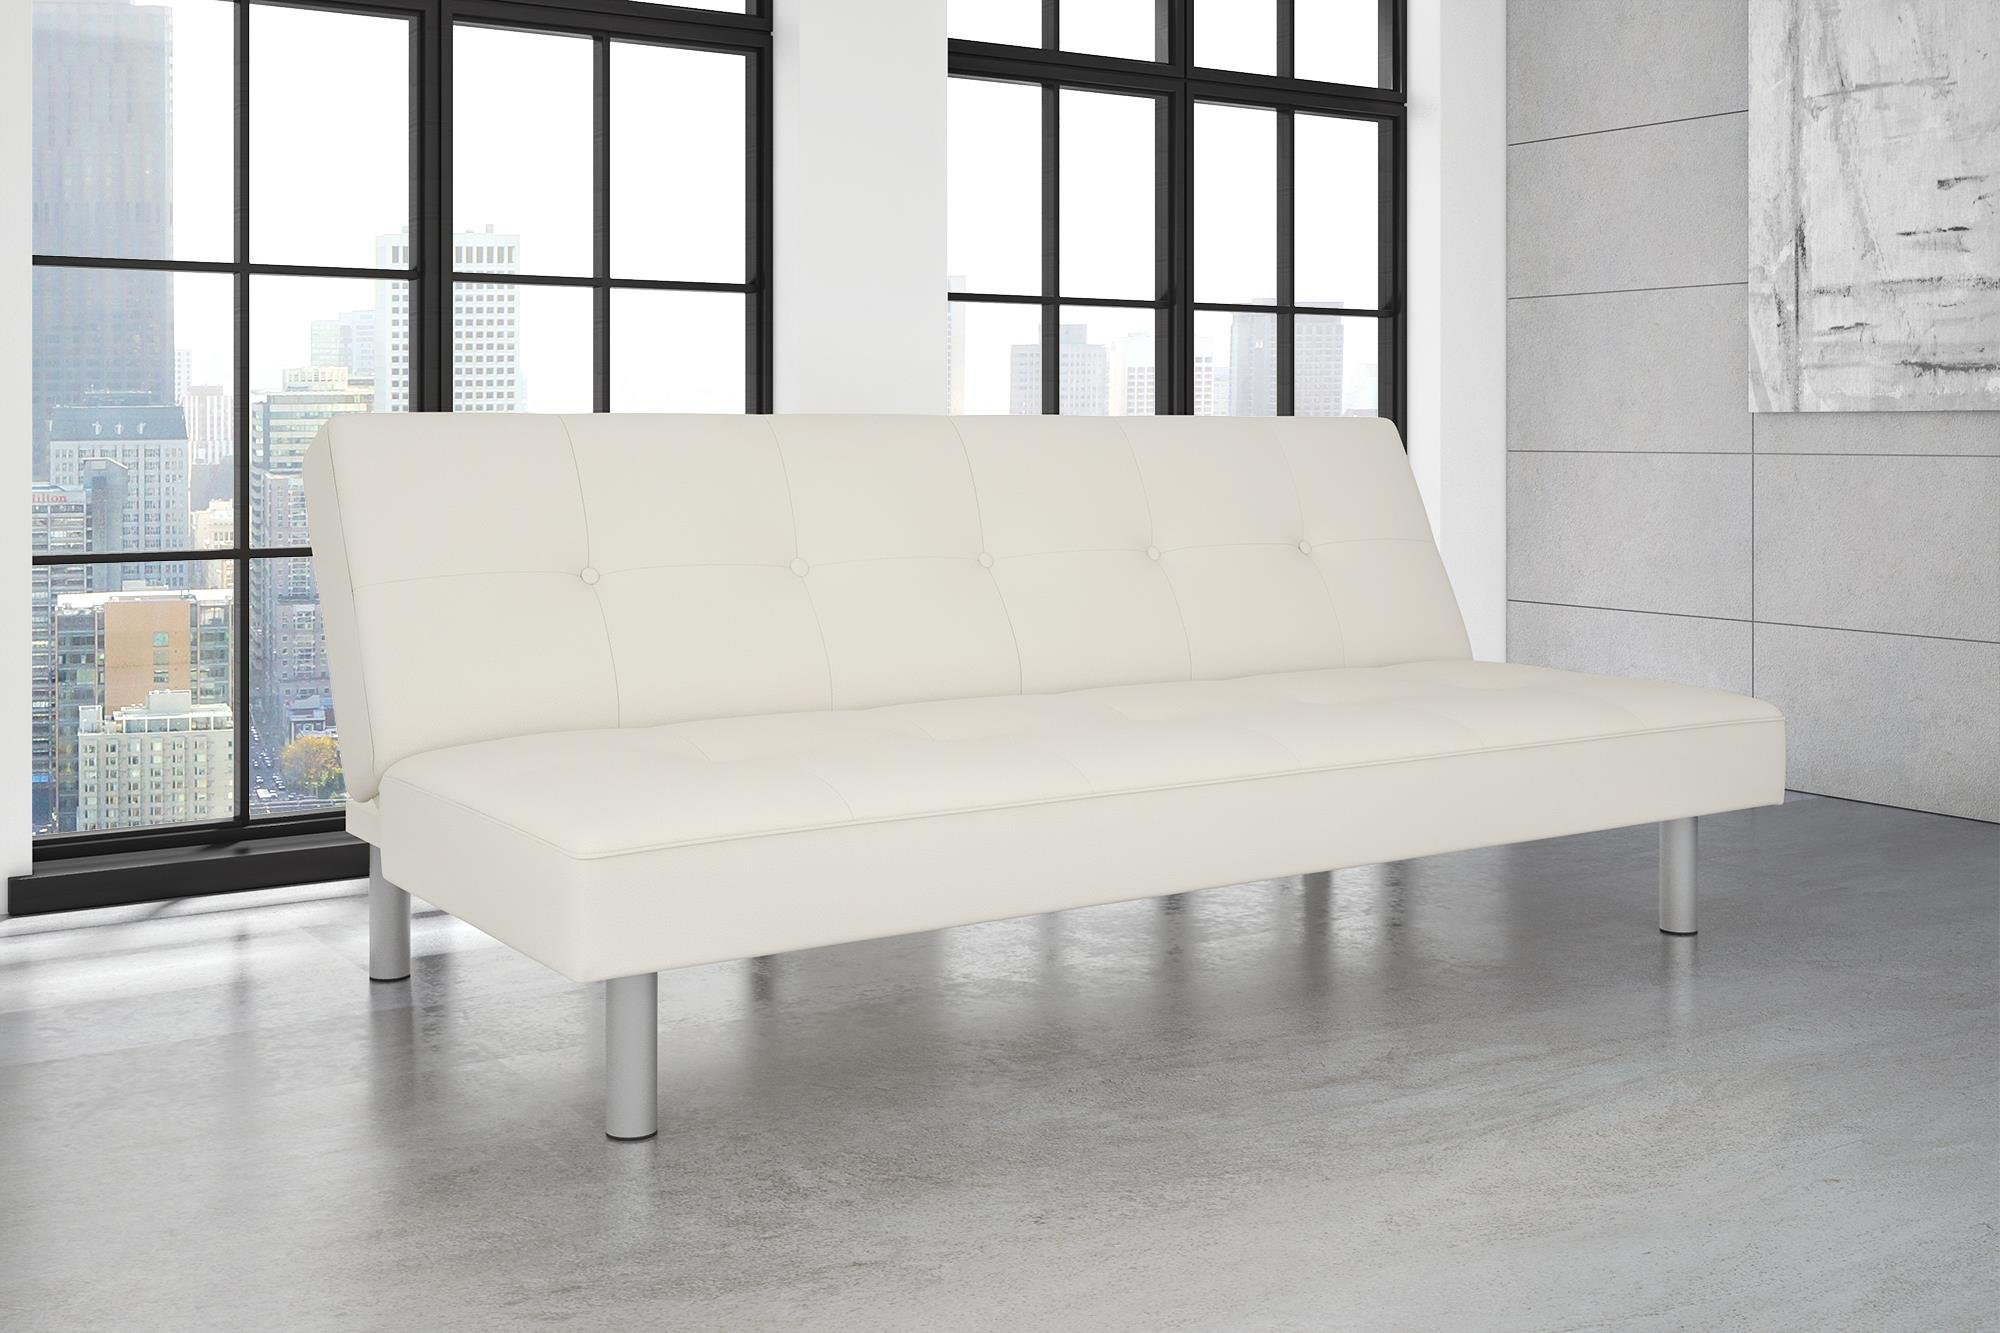 DHP Nola Futon Couch with Tufted Faux Leather Upholstery, Modern Style, White Faux Leather by DHP (Image #1)